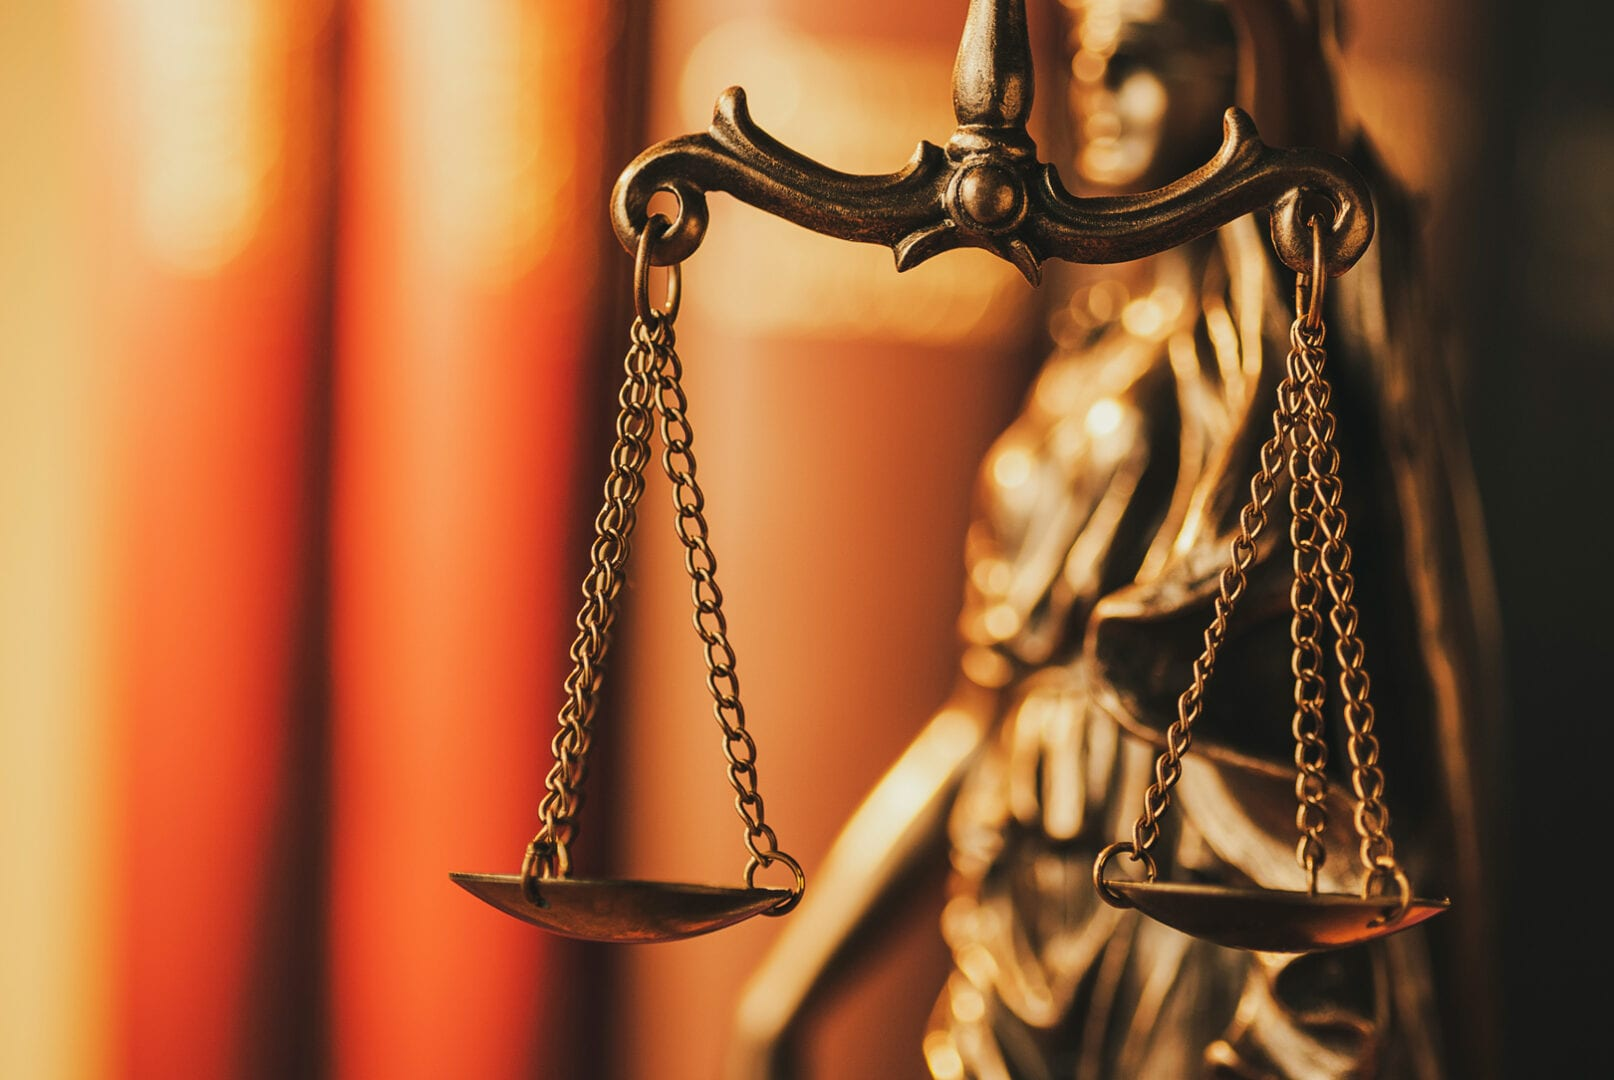 brass-scales-of-justice-in-a-close-up-view-MN6ZJSB